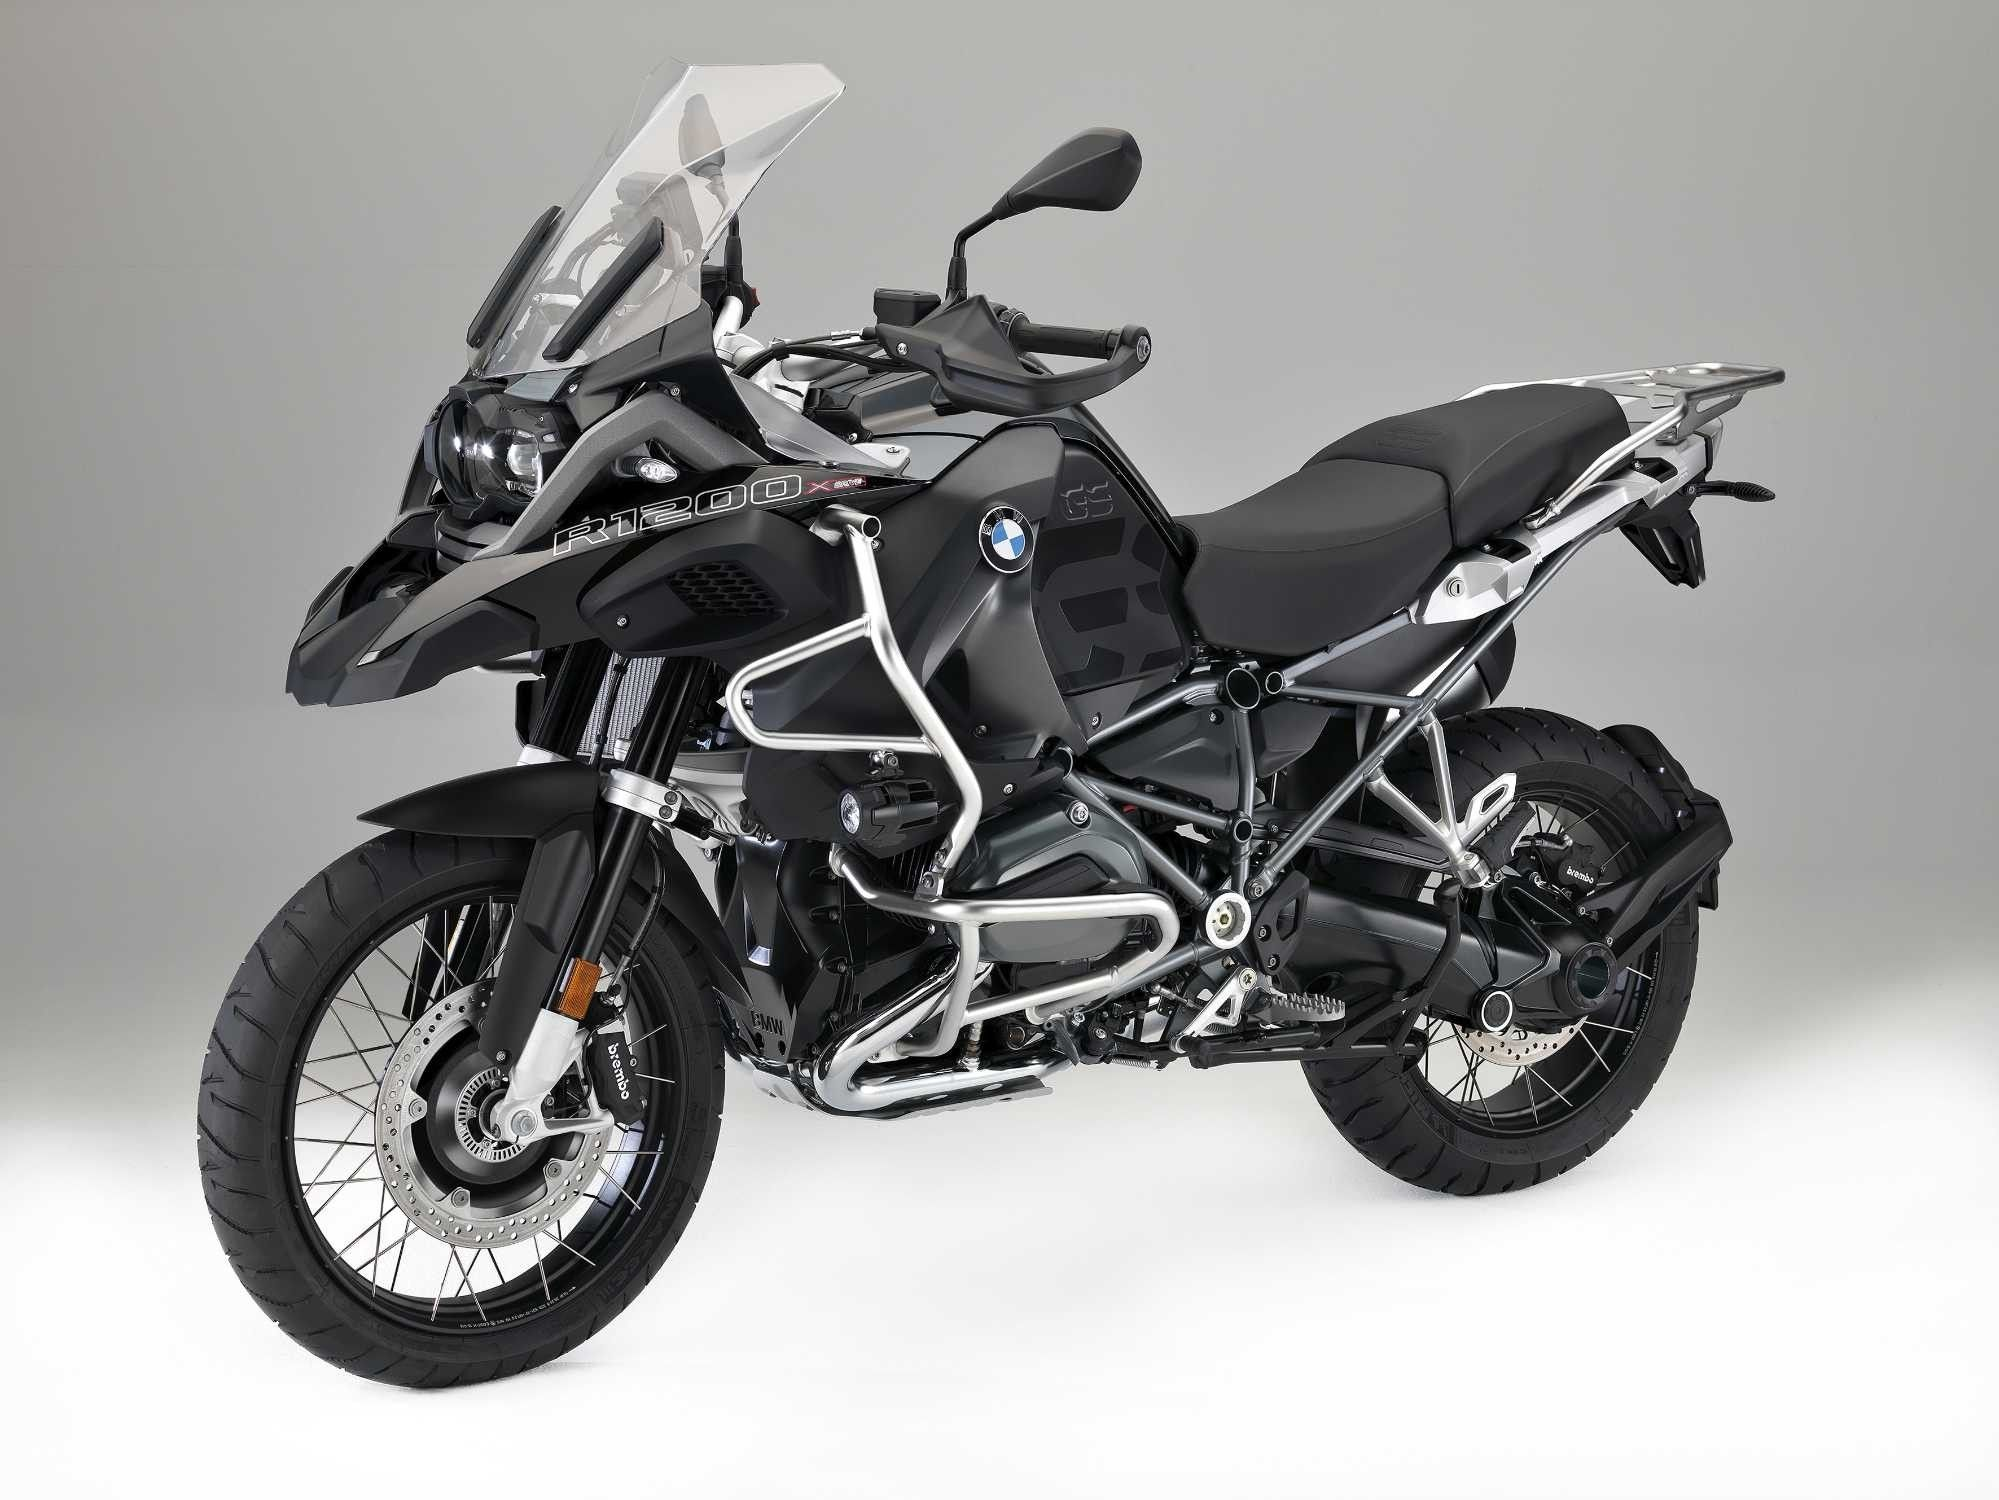 2019 Bmw R1200gs Exterior With Images Bmw Motorrad Bmw Motorbikes